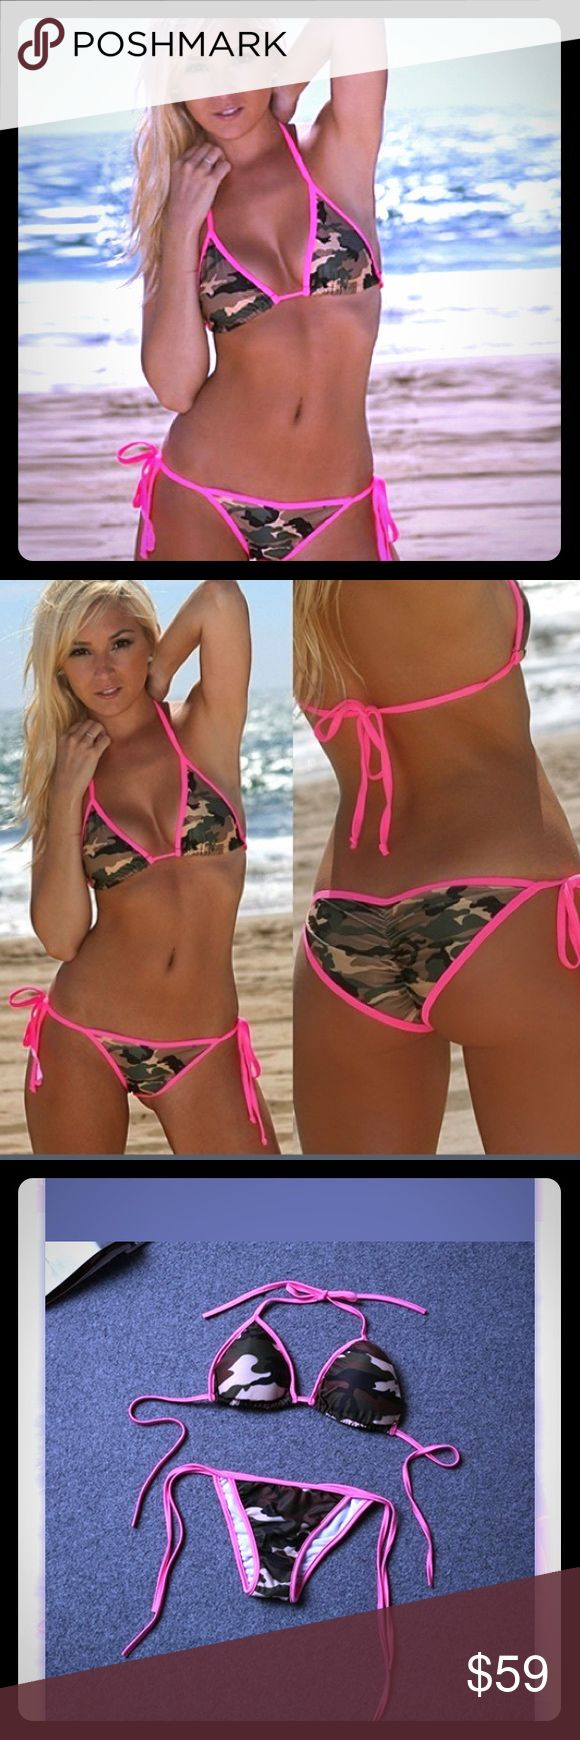 Only 2 In stock sexy camo & hot pink bikini  Amazingly sexy camo & hot pink bikini . You will love this rare sexy #. Rare find! While they last. Not actual vs pink... Listed for exposure. PINK Victoria's Secret Swim Bikinis